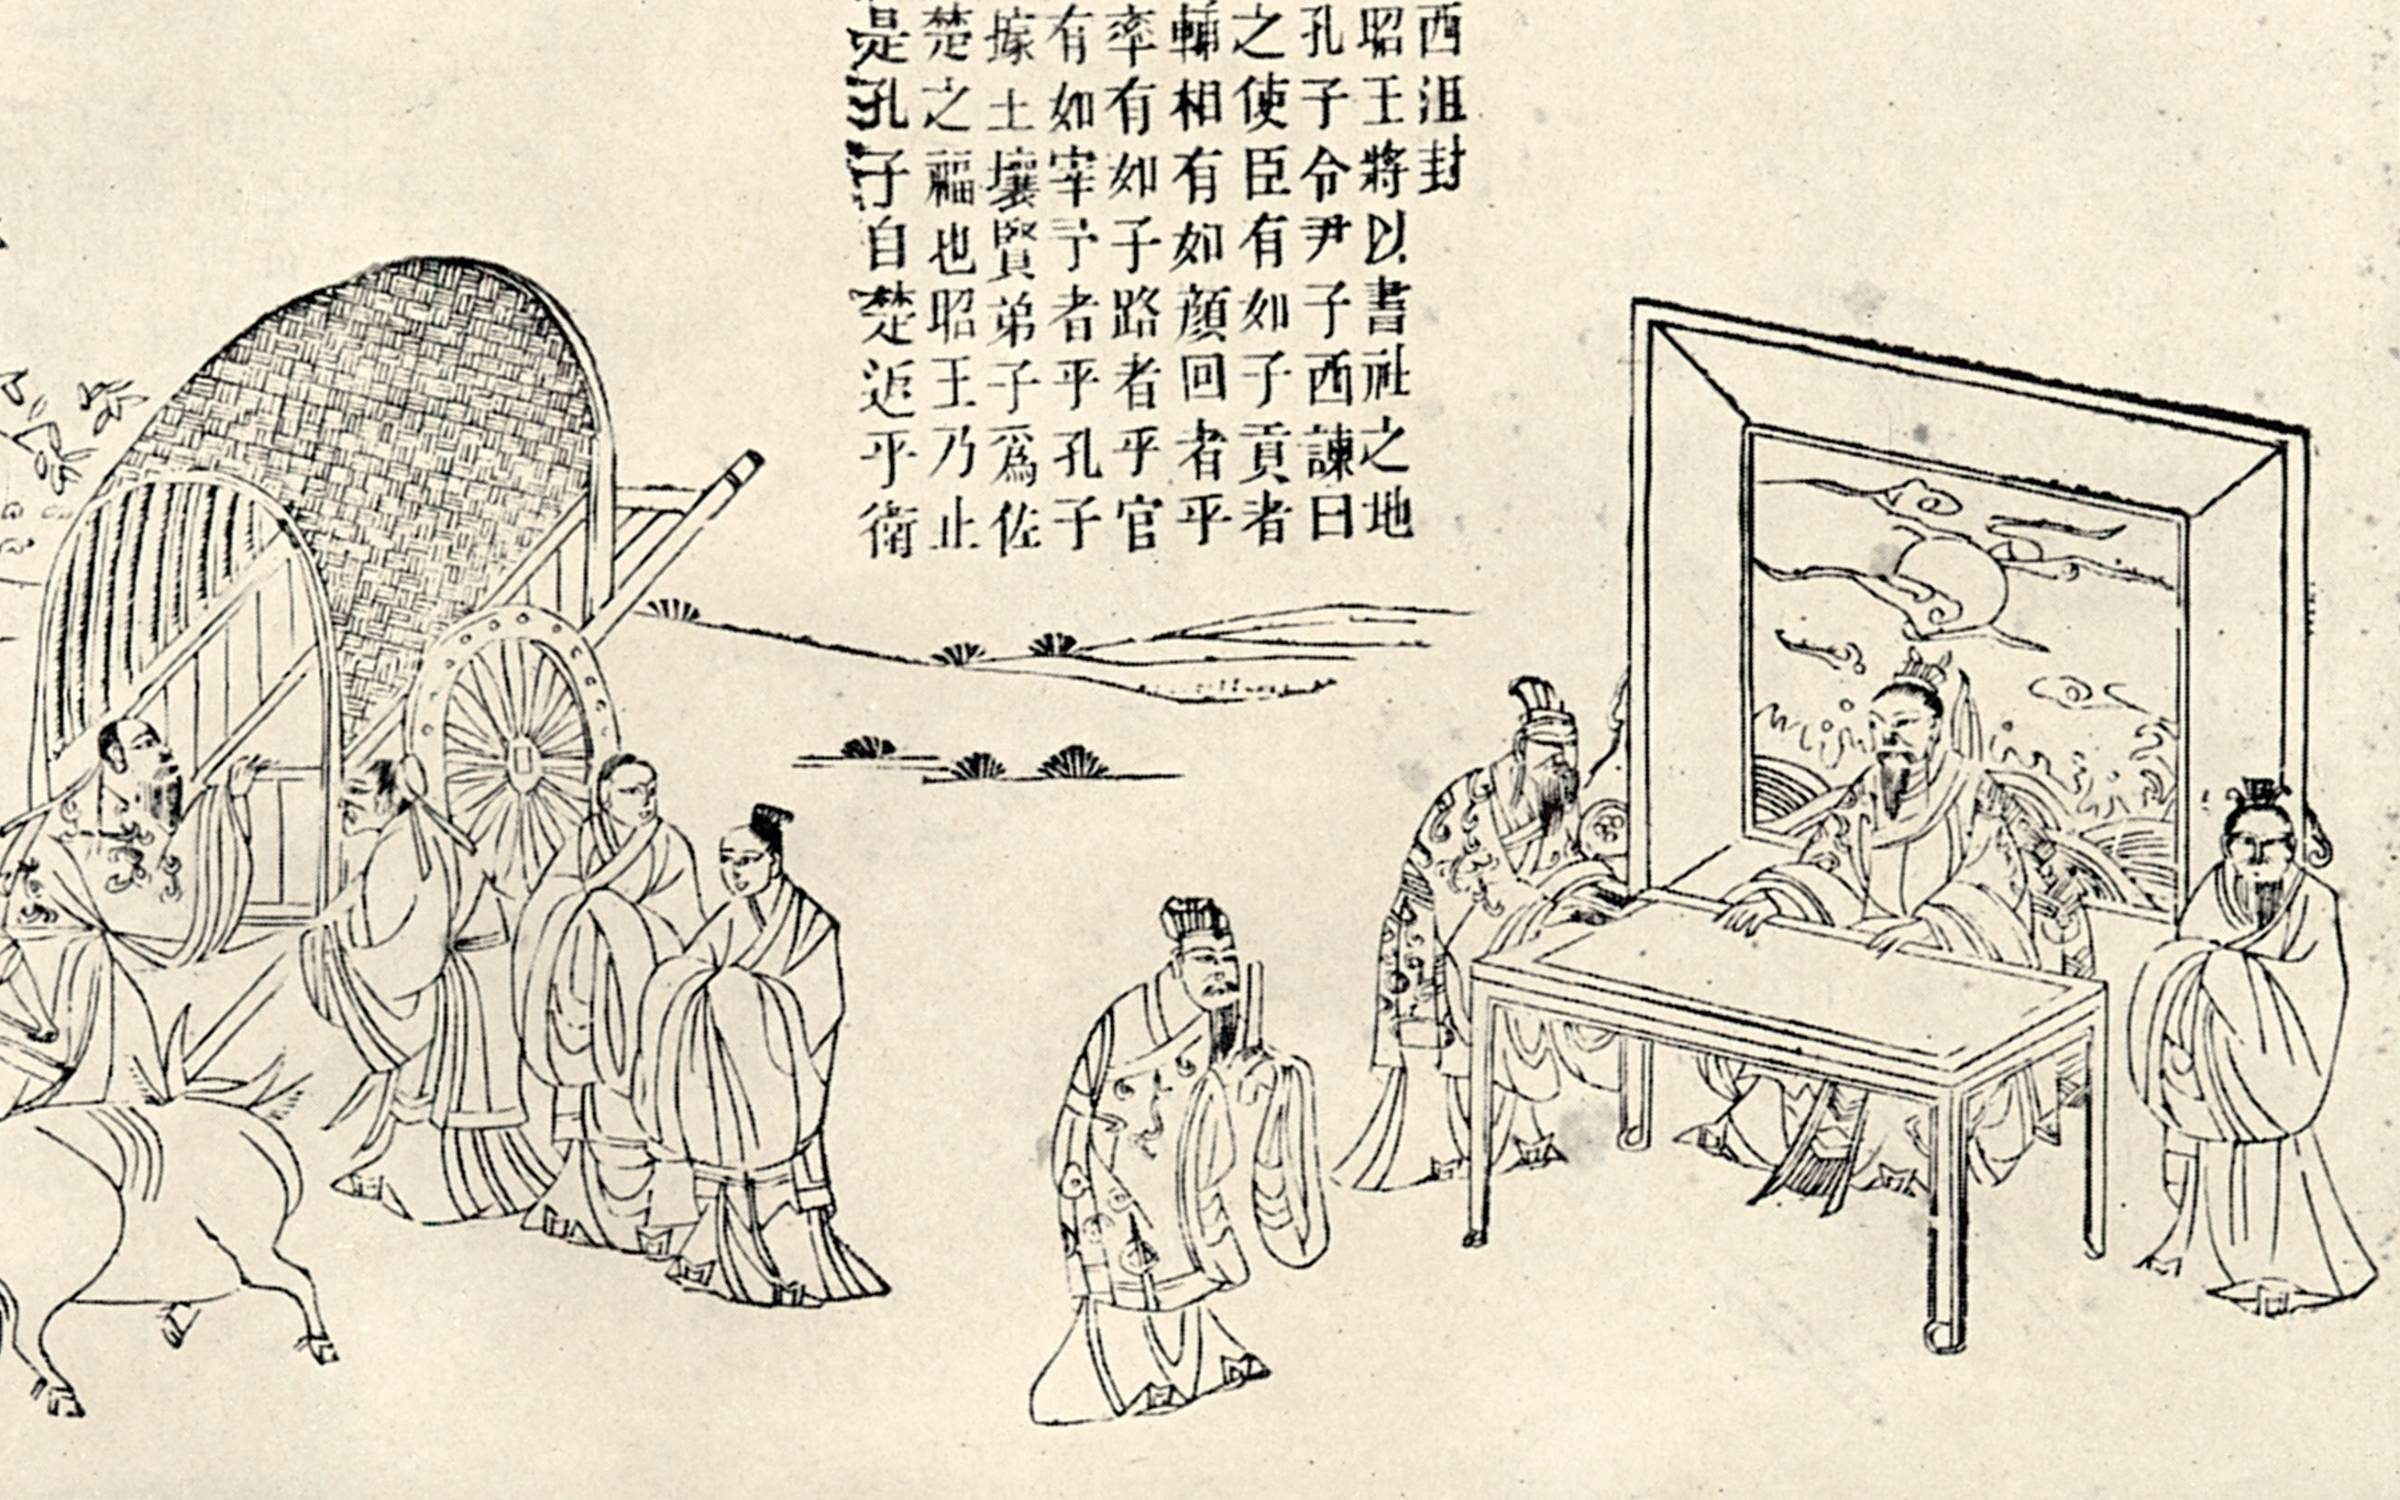 A 19th century print of Confucius (c551-479 BC) visiting court. 19th century. Credit: Ann Ronan Pictures/Print Collector/Getty Images